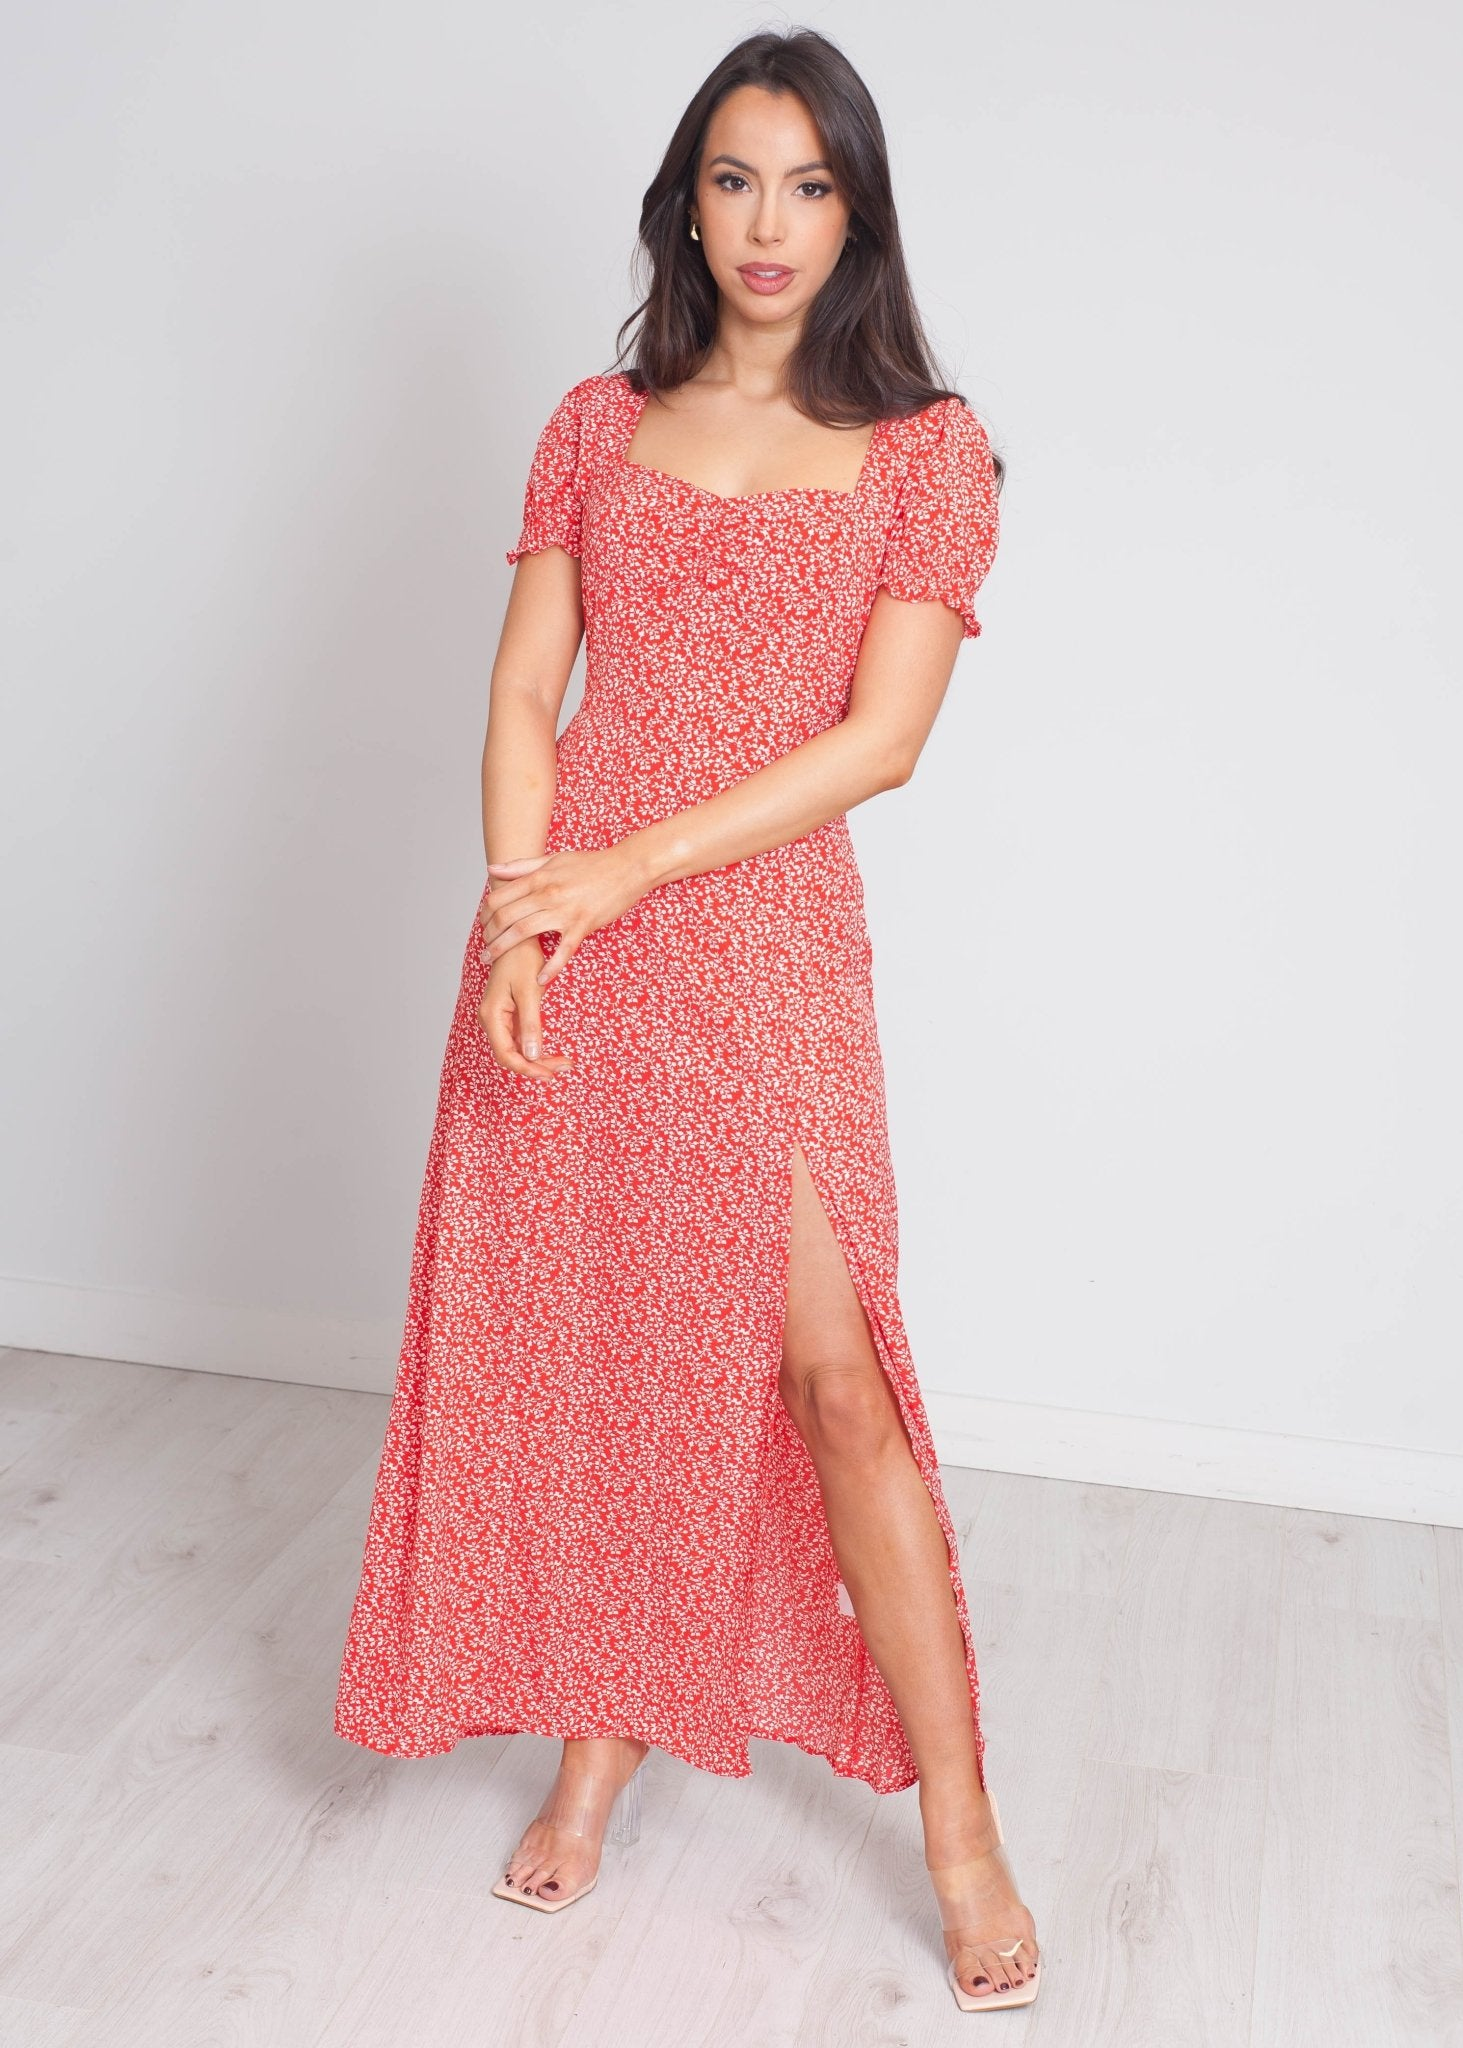 Violet Printed Midi Dress In Red Mix - The Walk in Wardrobe